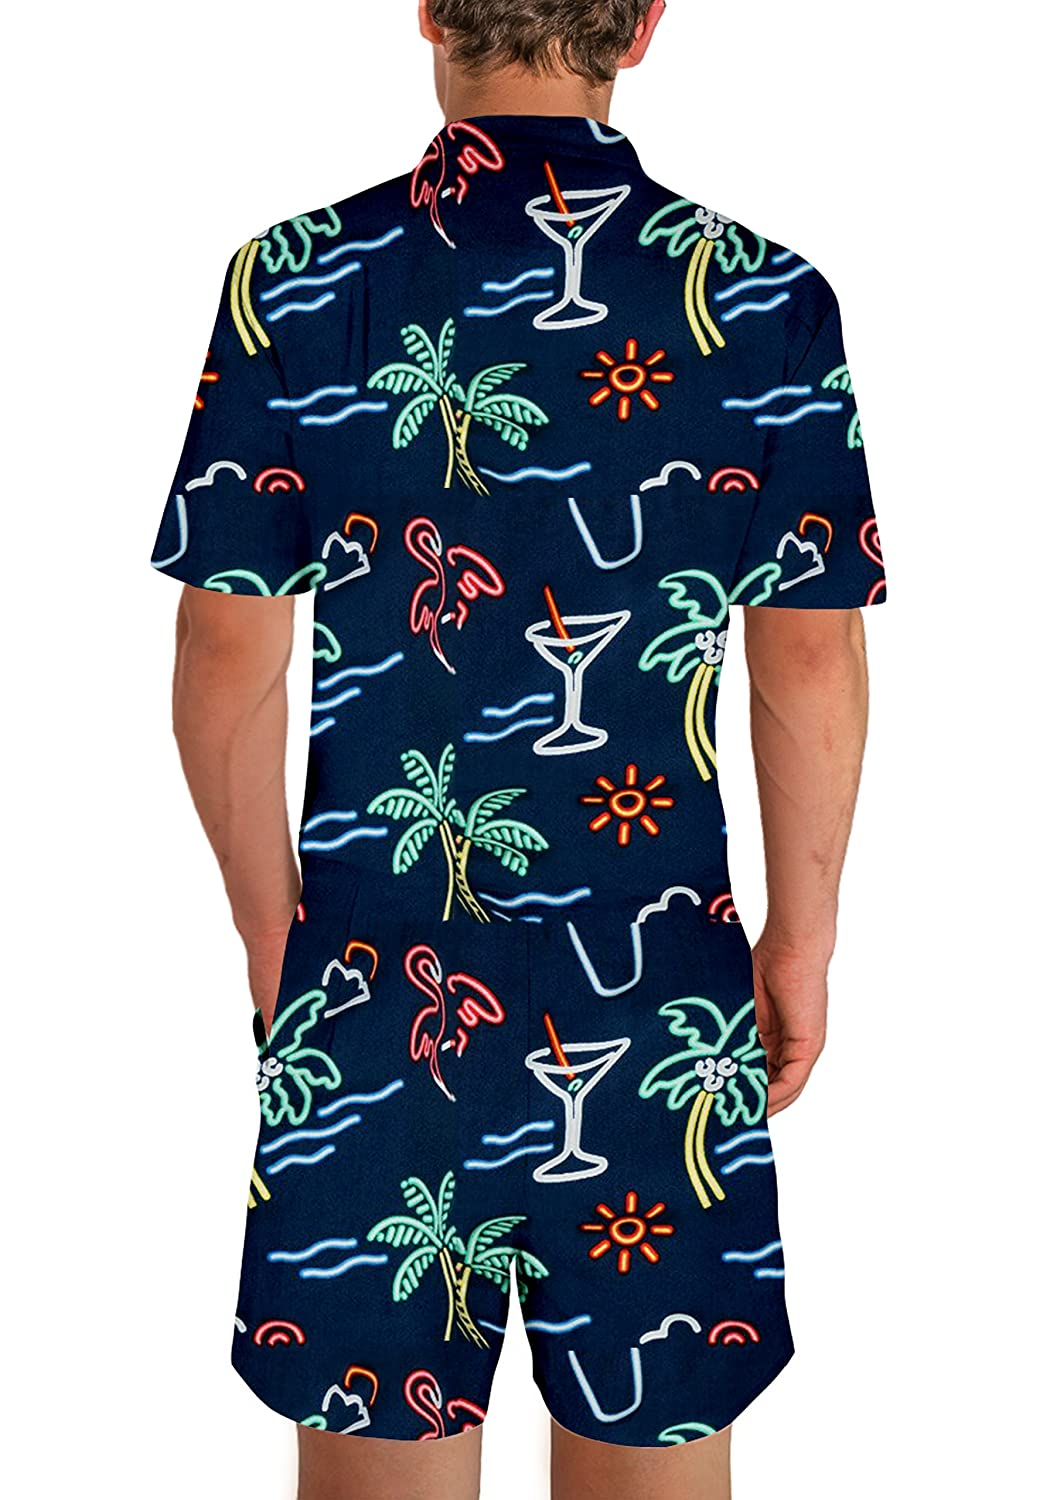 0b23da98b36 UNIFACO Mens Printed One Piece Short Sleeve Zipper Rompers Summer Short  Jumpsuit Overall Pants w Pocket at Amazon Men s Clothing store